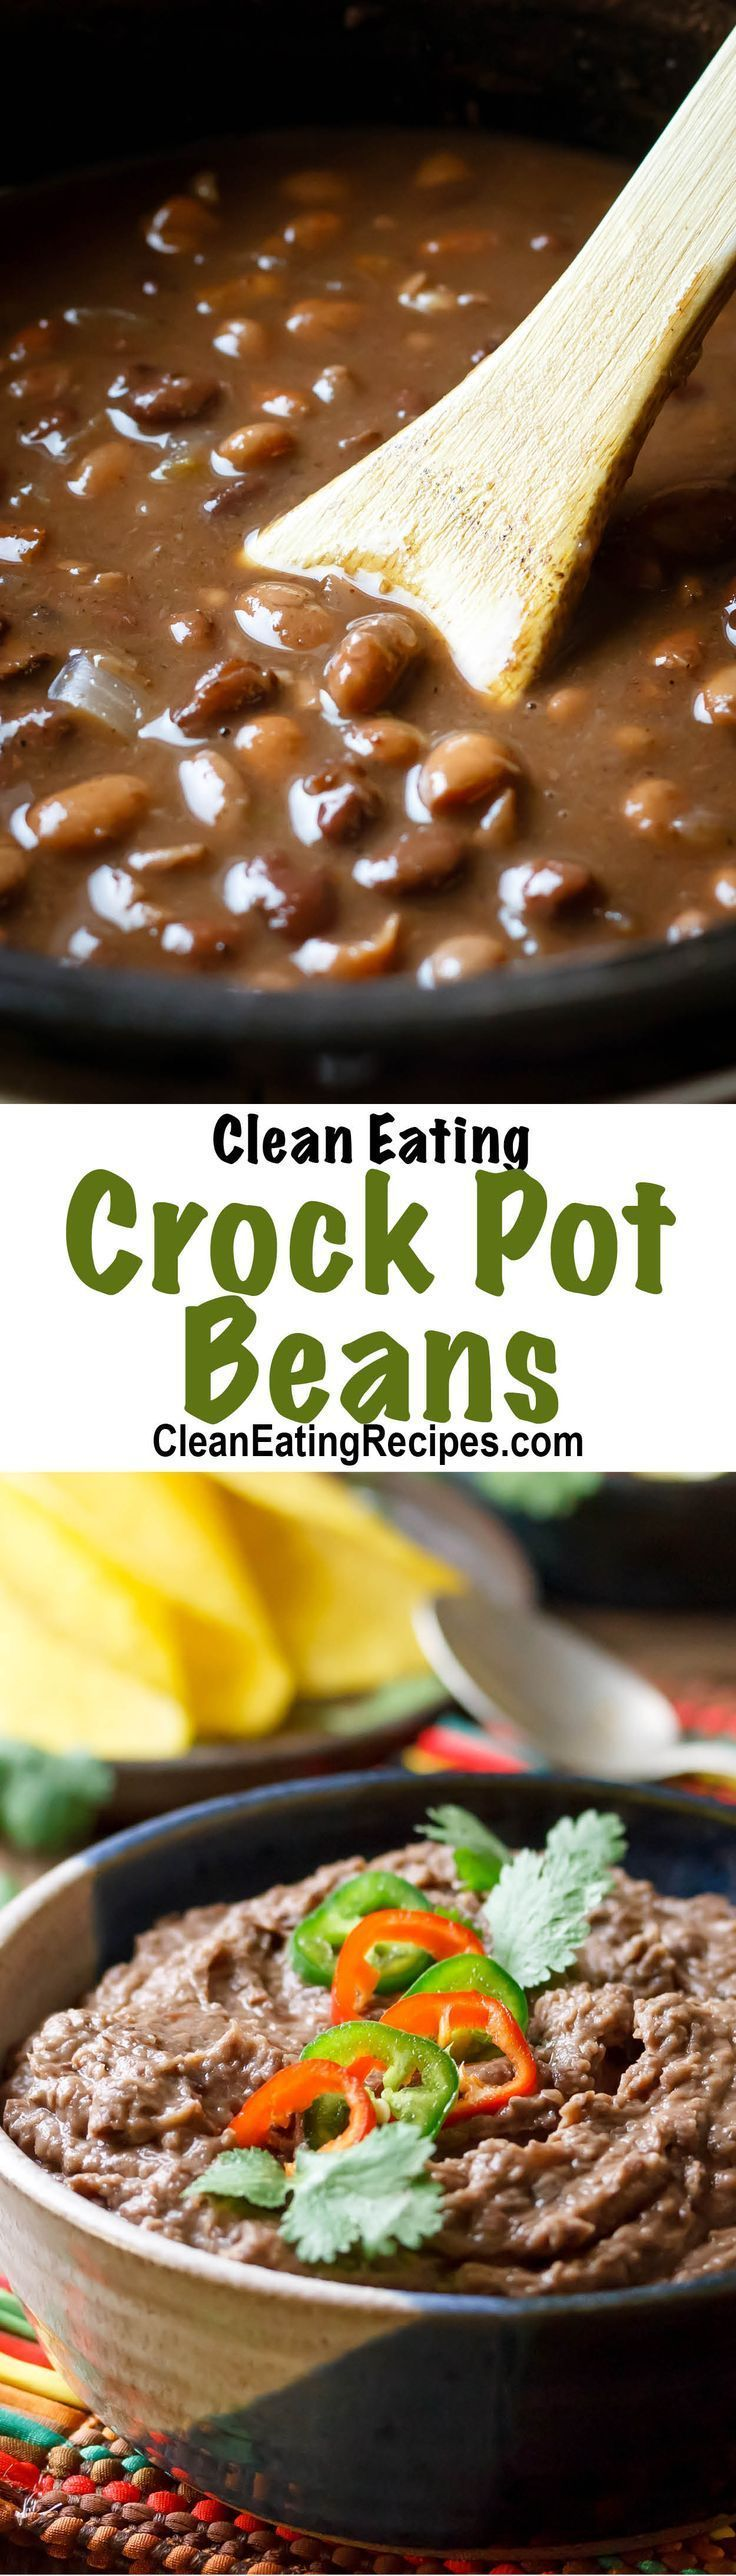 """These are insanely easy to make and taste tons better than canned beans. I love to make a big batch of whatever kind of bean I am in the mood for and then freeze them in individual portions to eat later. I """"refry"""" them after I unthaw them, so I can use the beans whole if I want."""